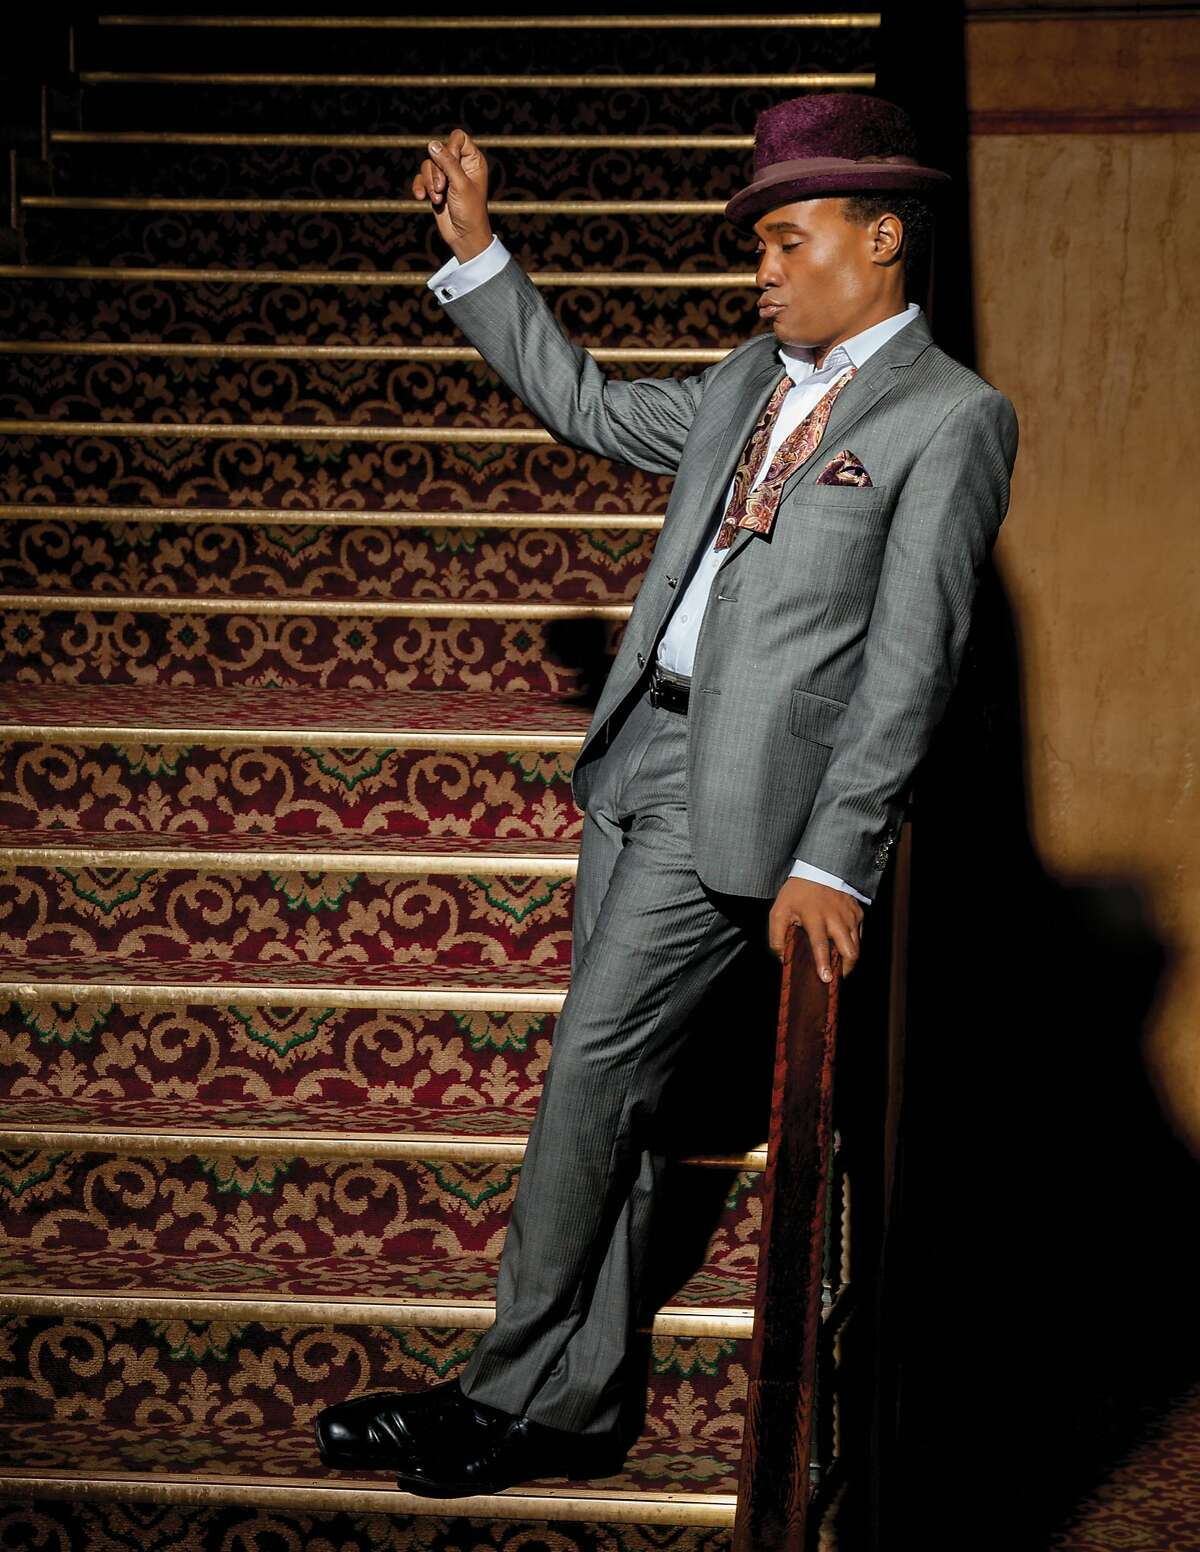 Billy Porter performs Sunday, May 14 at the Venetian Room, Fairmont San Francisco, as part of the Bay Area Cabaret program.